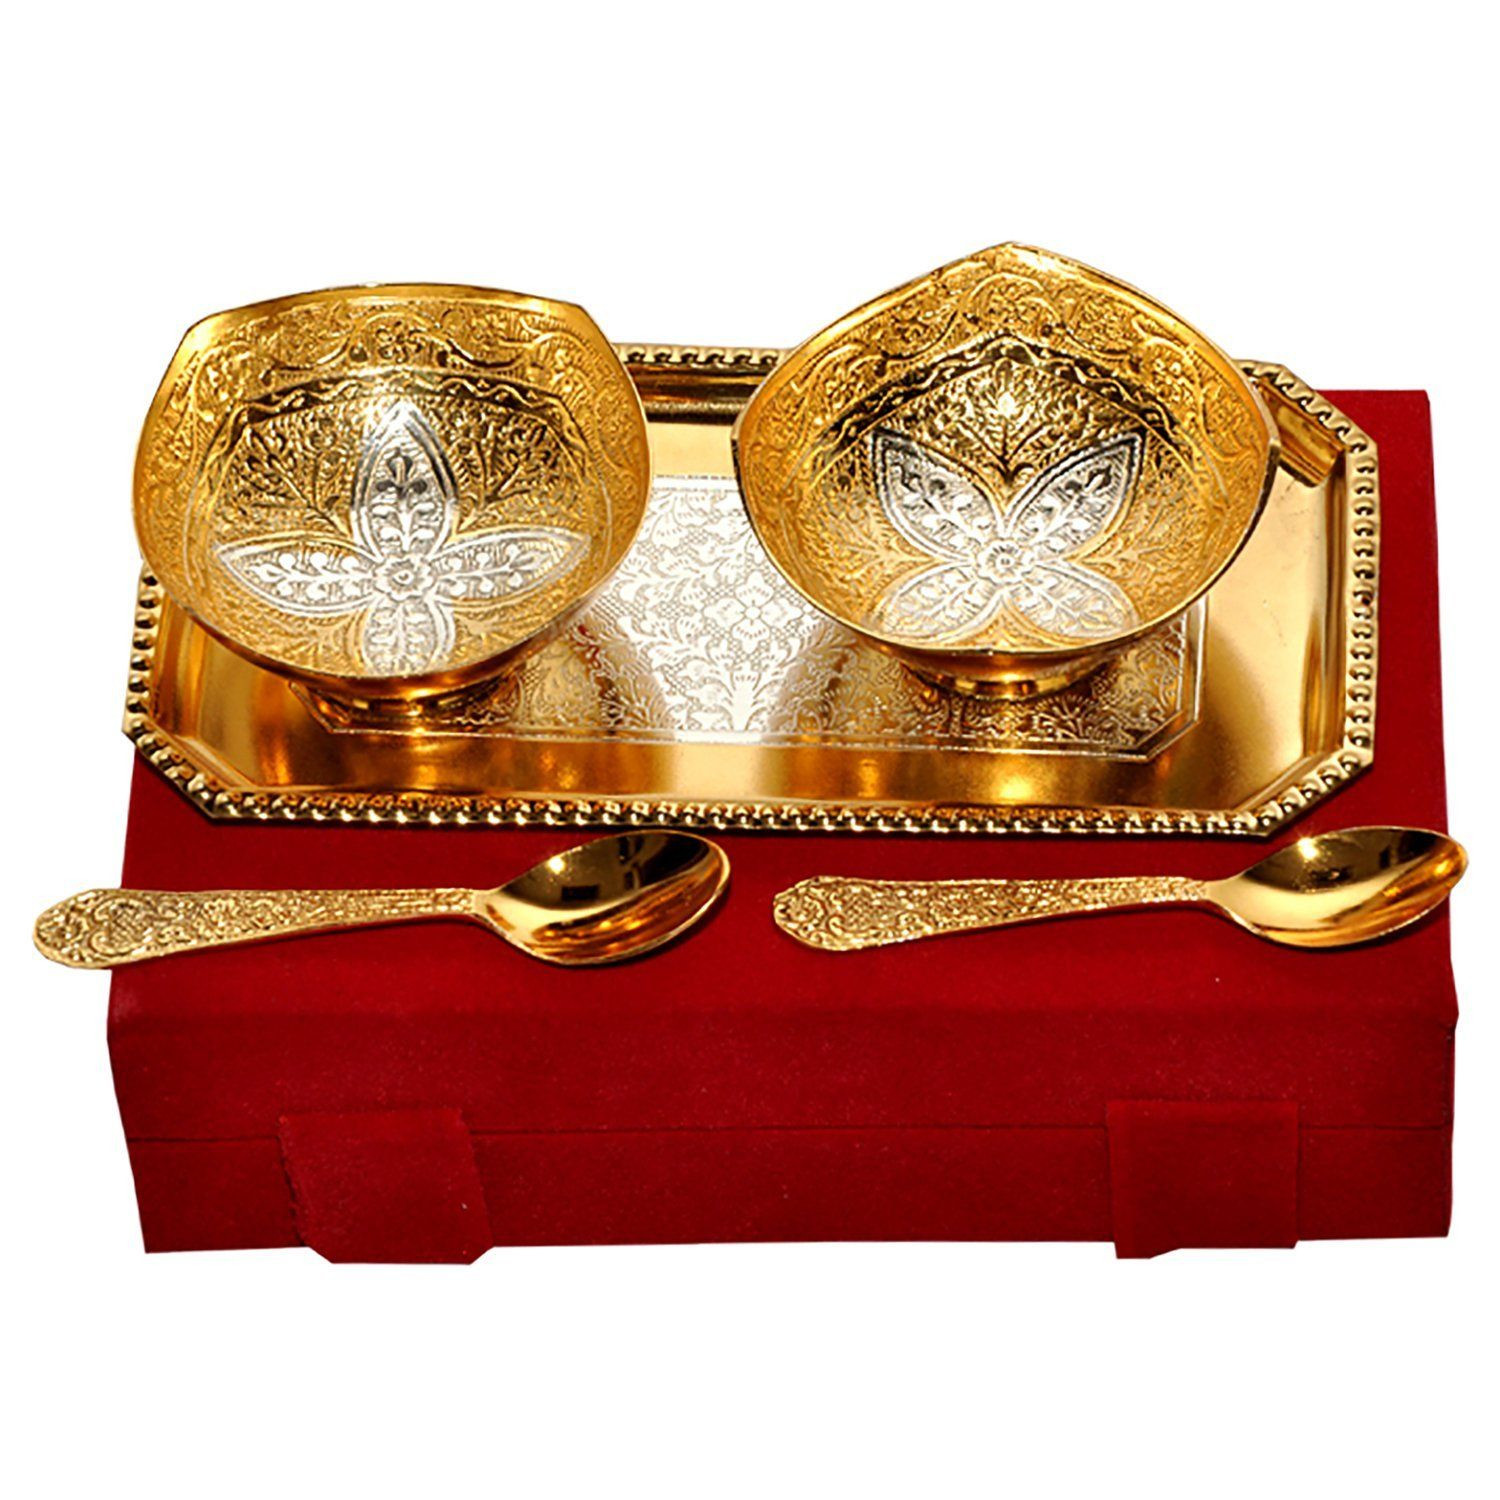 small glass vases amazon of amazon com rangsthali home decorative gold silver plated brass with regard to amazon com rangsthali home decorative gold silver plated brass bowl tray set of 5 pcs rbsg00024